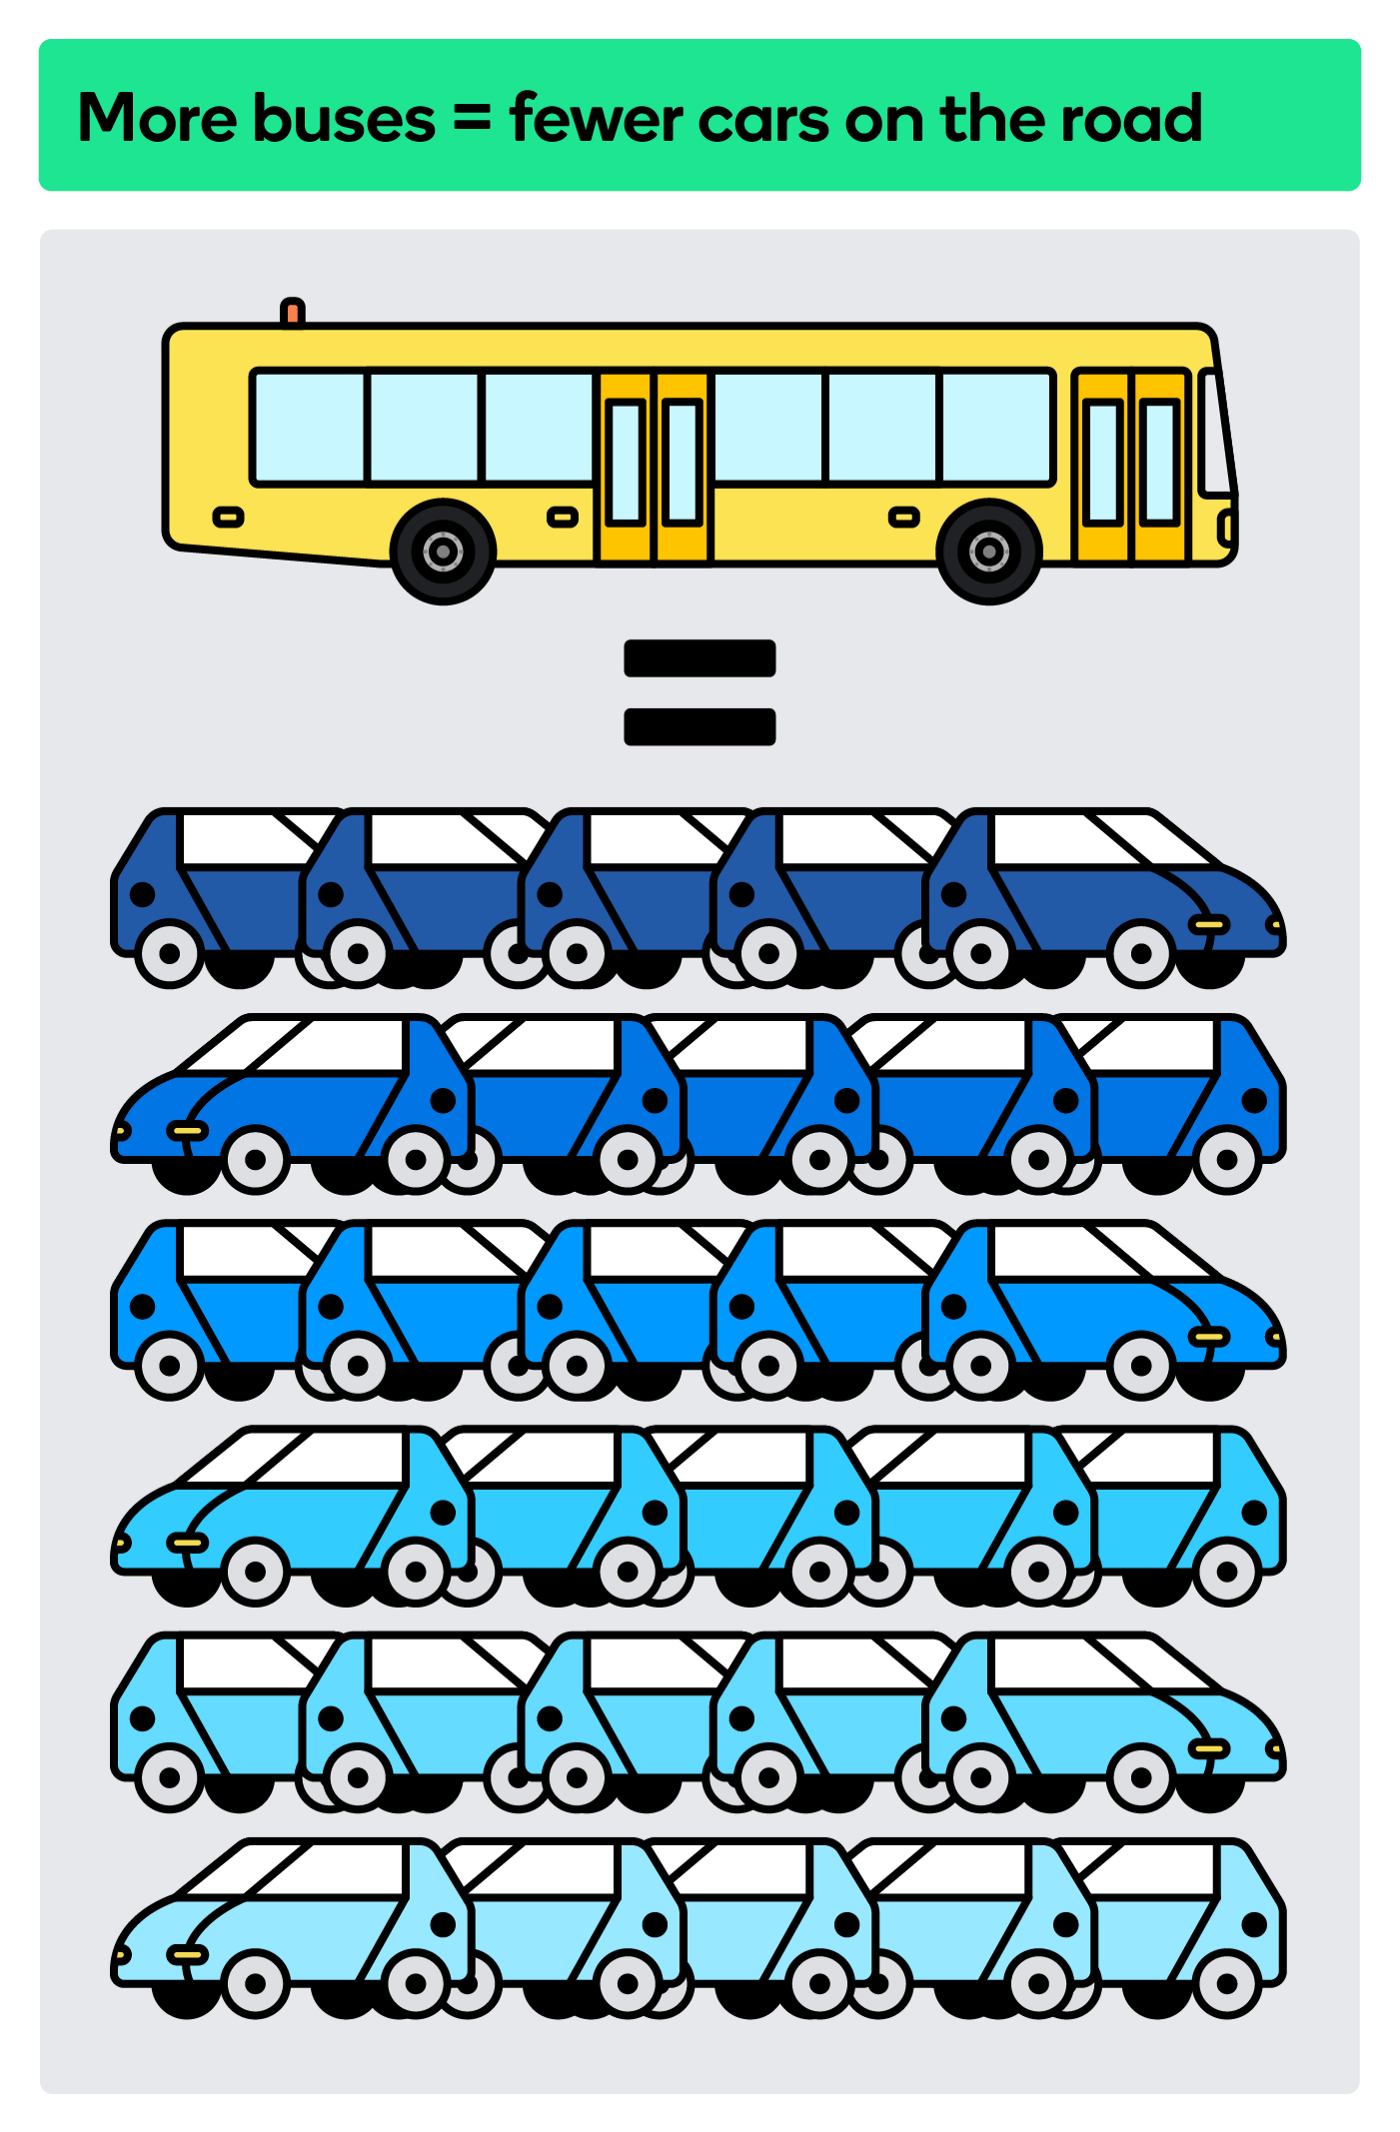 More bus rides means fewer cars on the road (and less traffic).